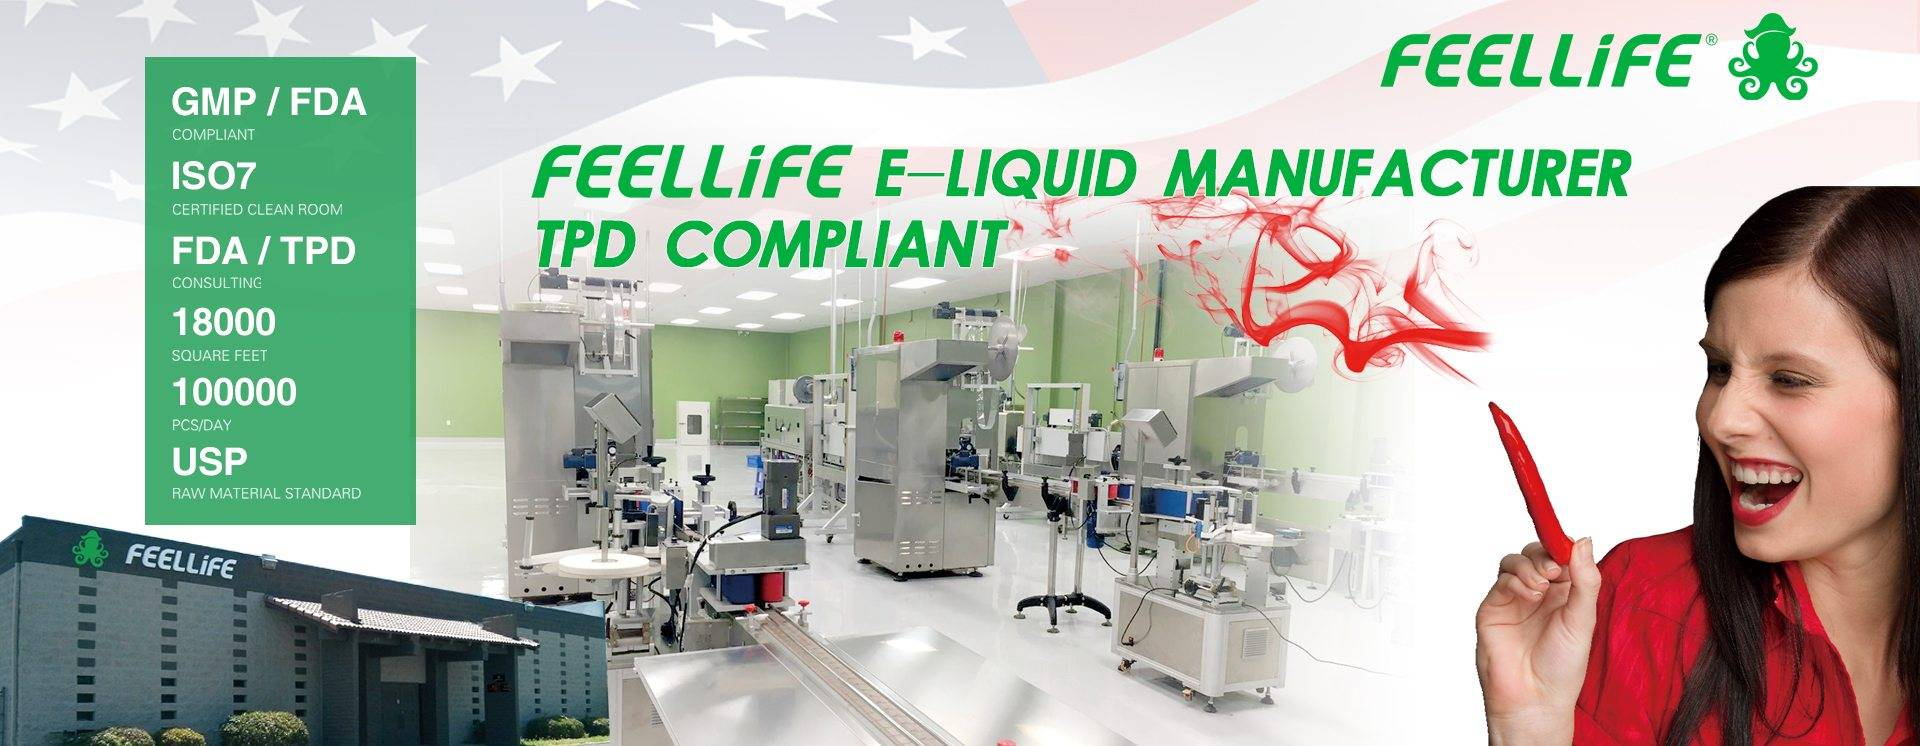 FEELLiFE setting the U.S.A factory based on the purpose of offering short lead time, delivery time and lower freight to customers. The U.S. production and audit standards also give customers greater security and confidence.